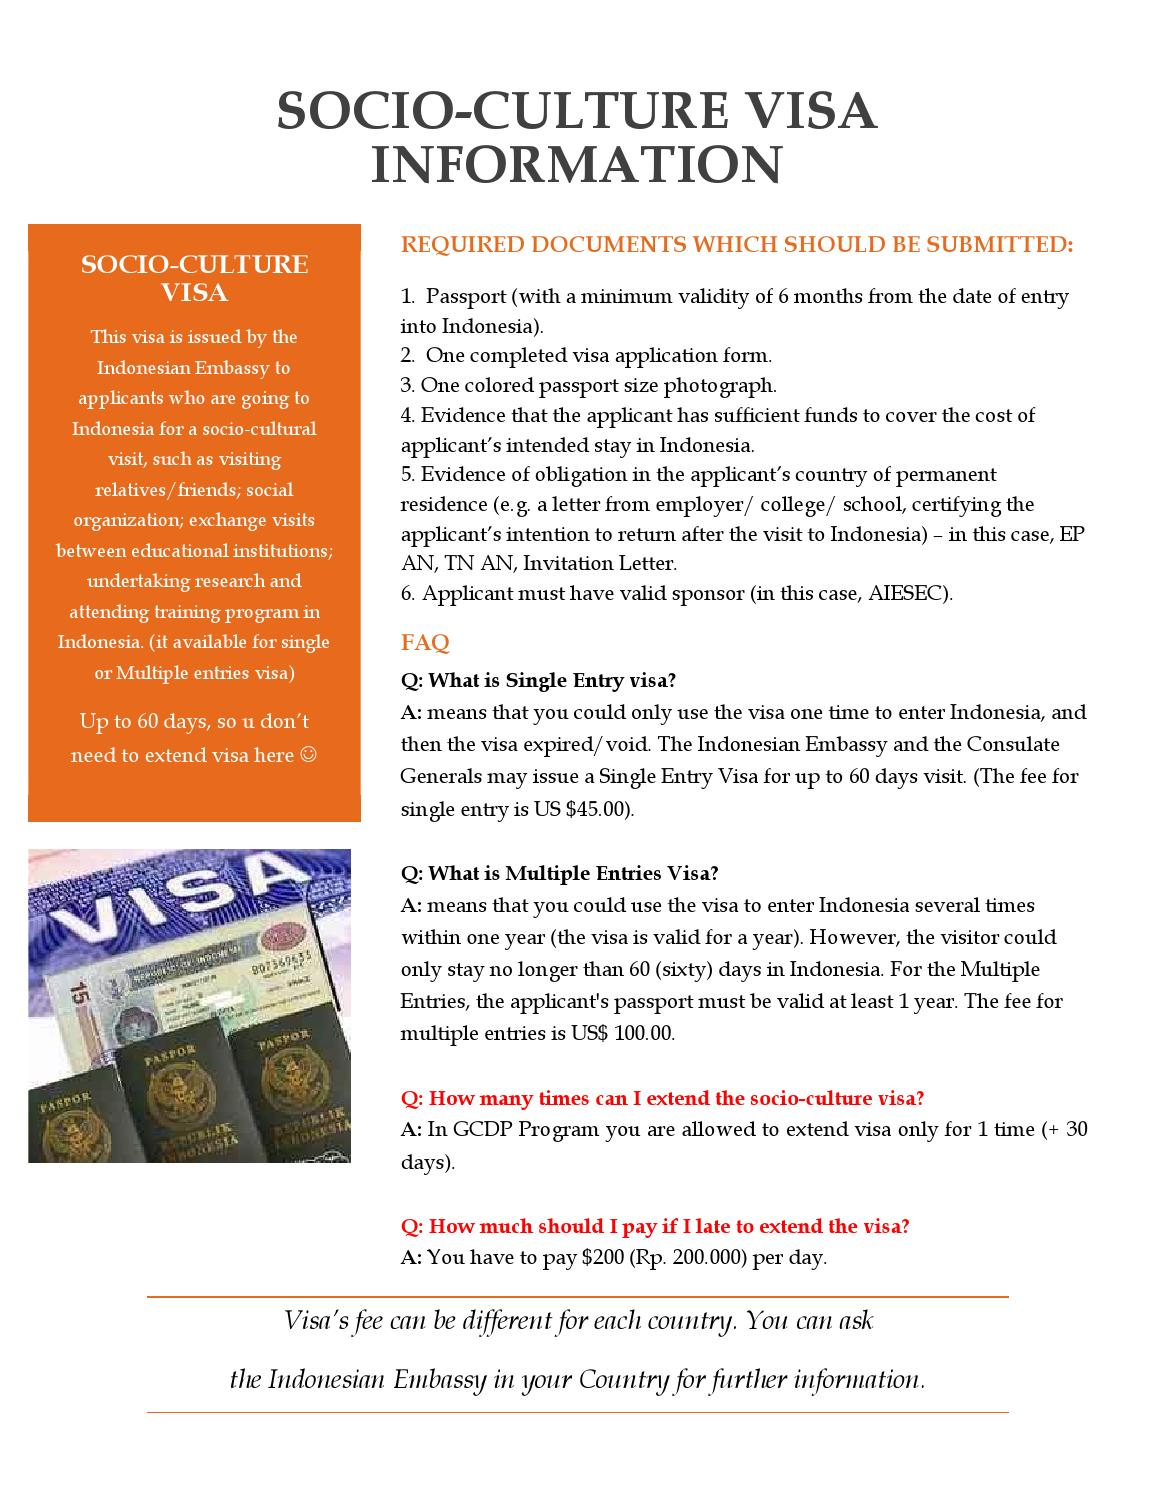 AIESEC Indonesia Visa Information by AIESEC Indonesia  issuu